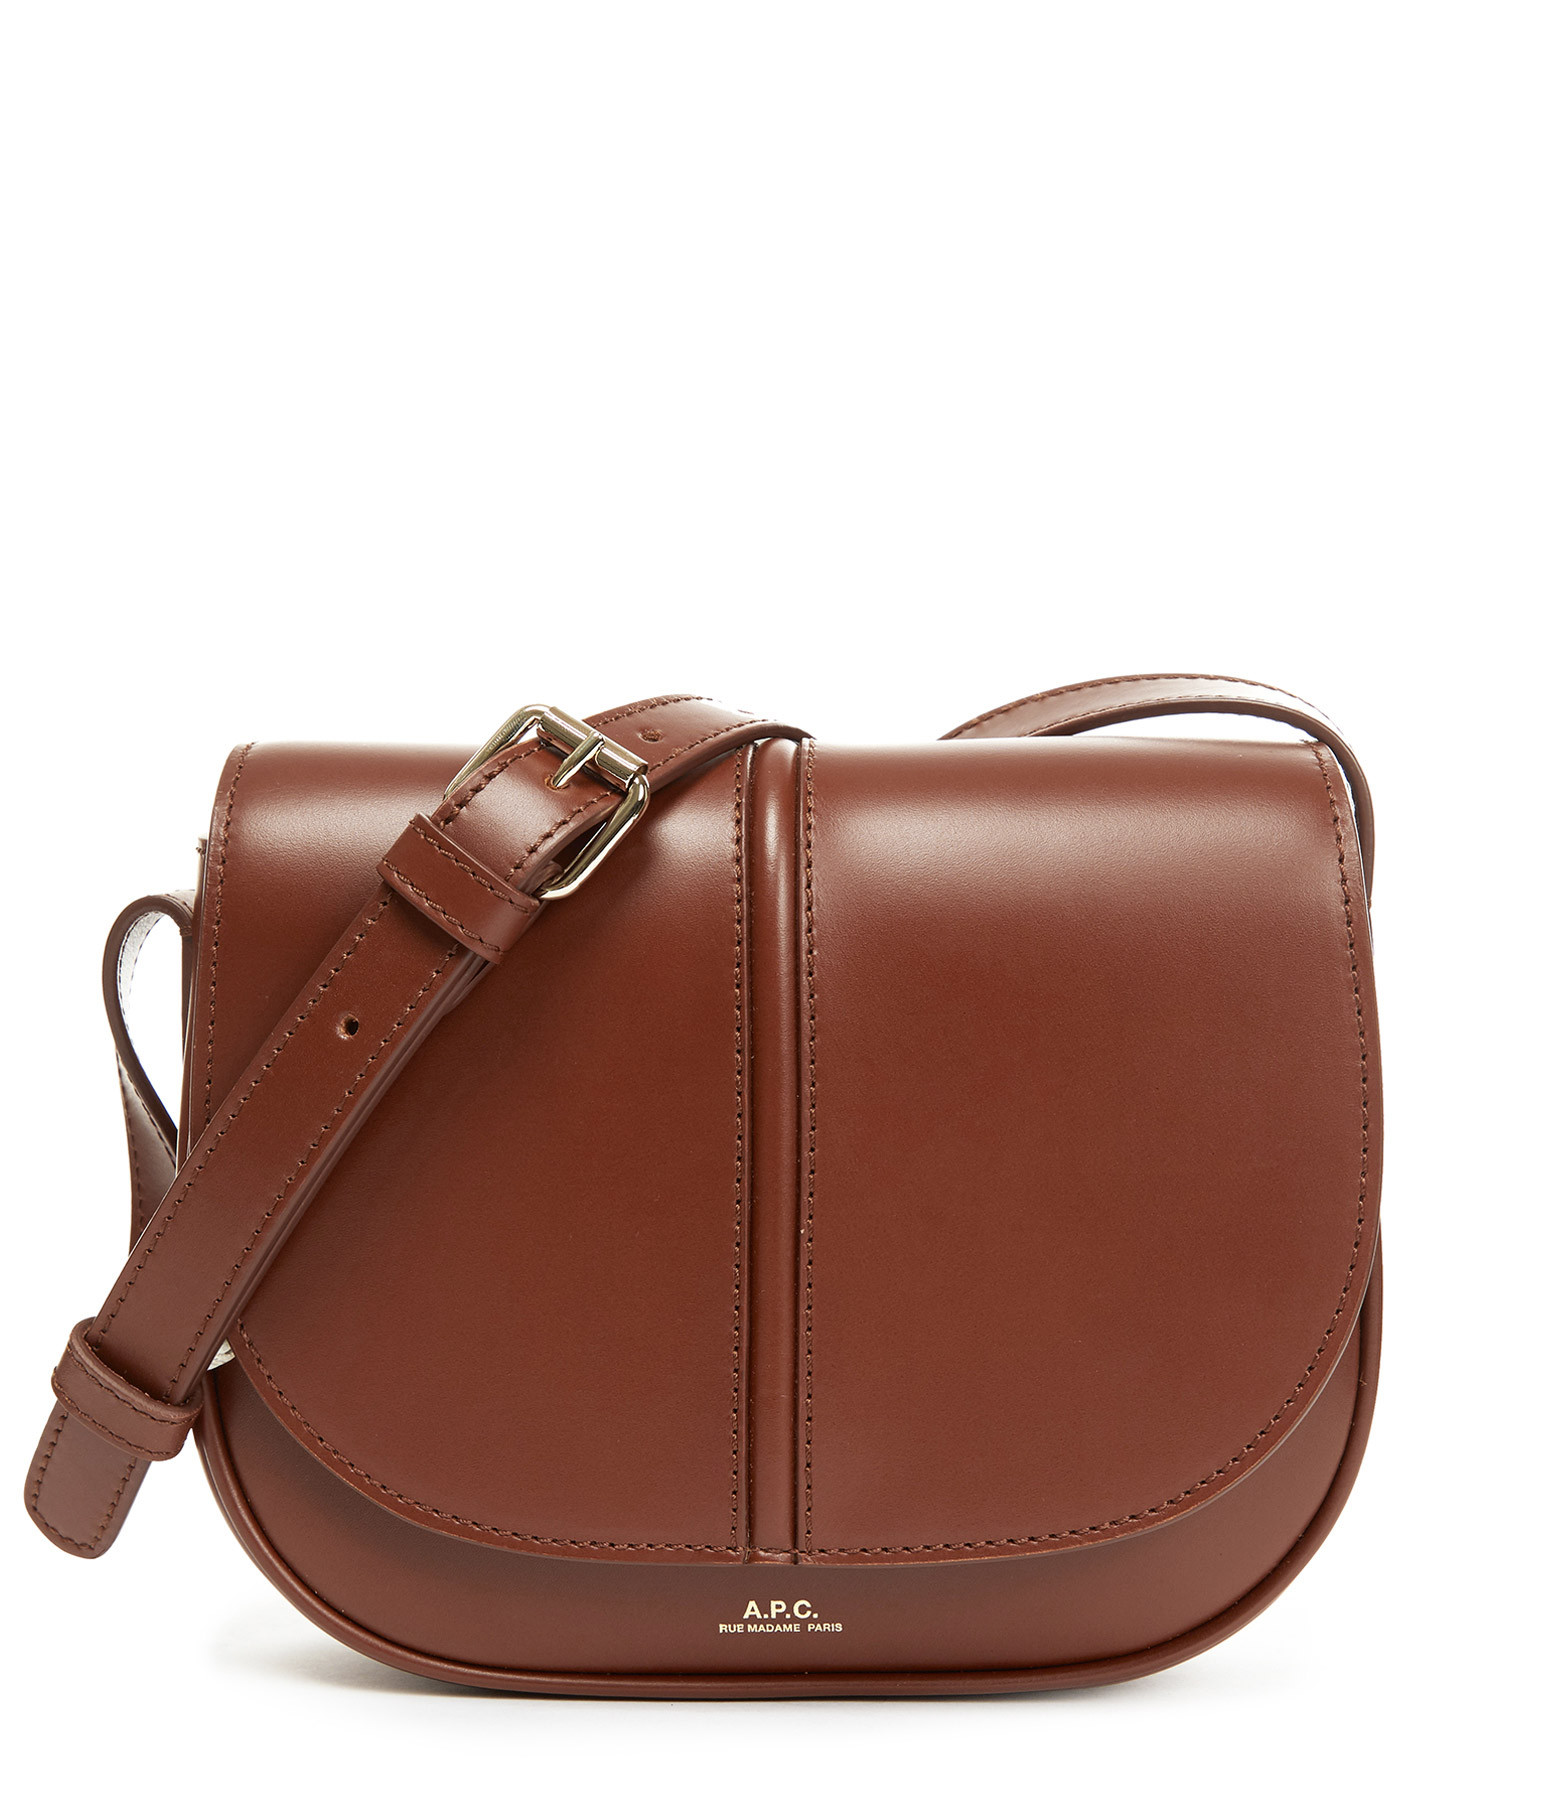 A.P.C. - Sac Betty Cuir Lisse Noisette